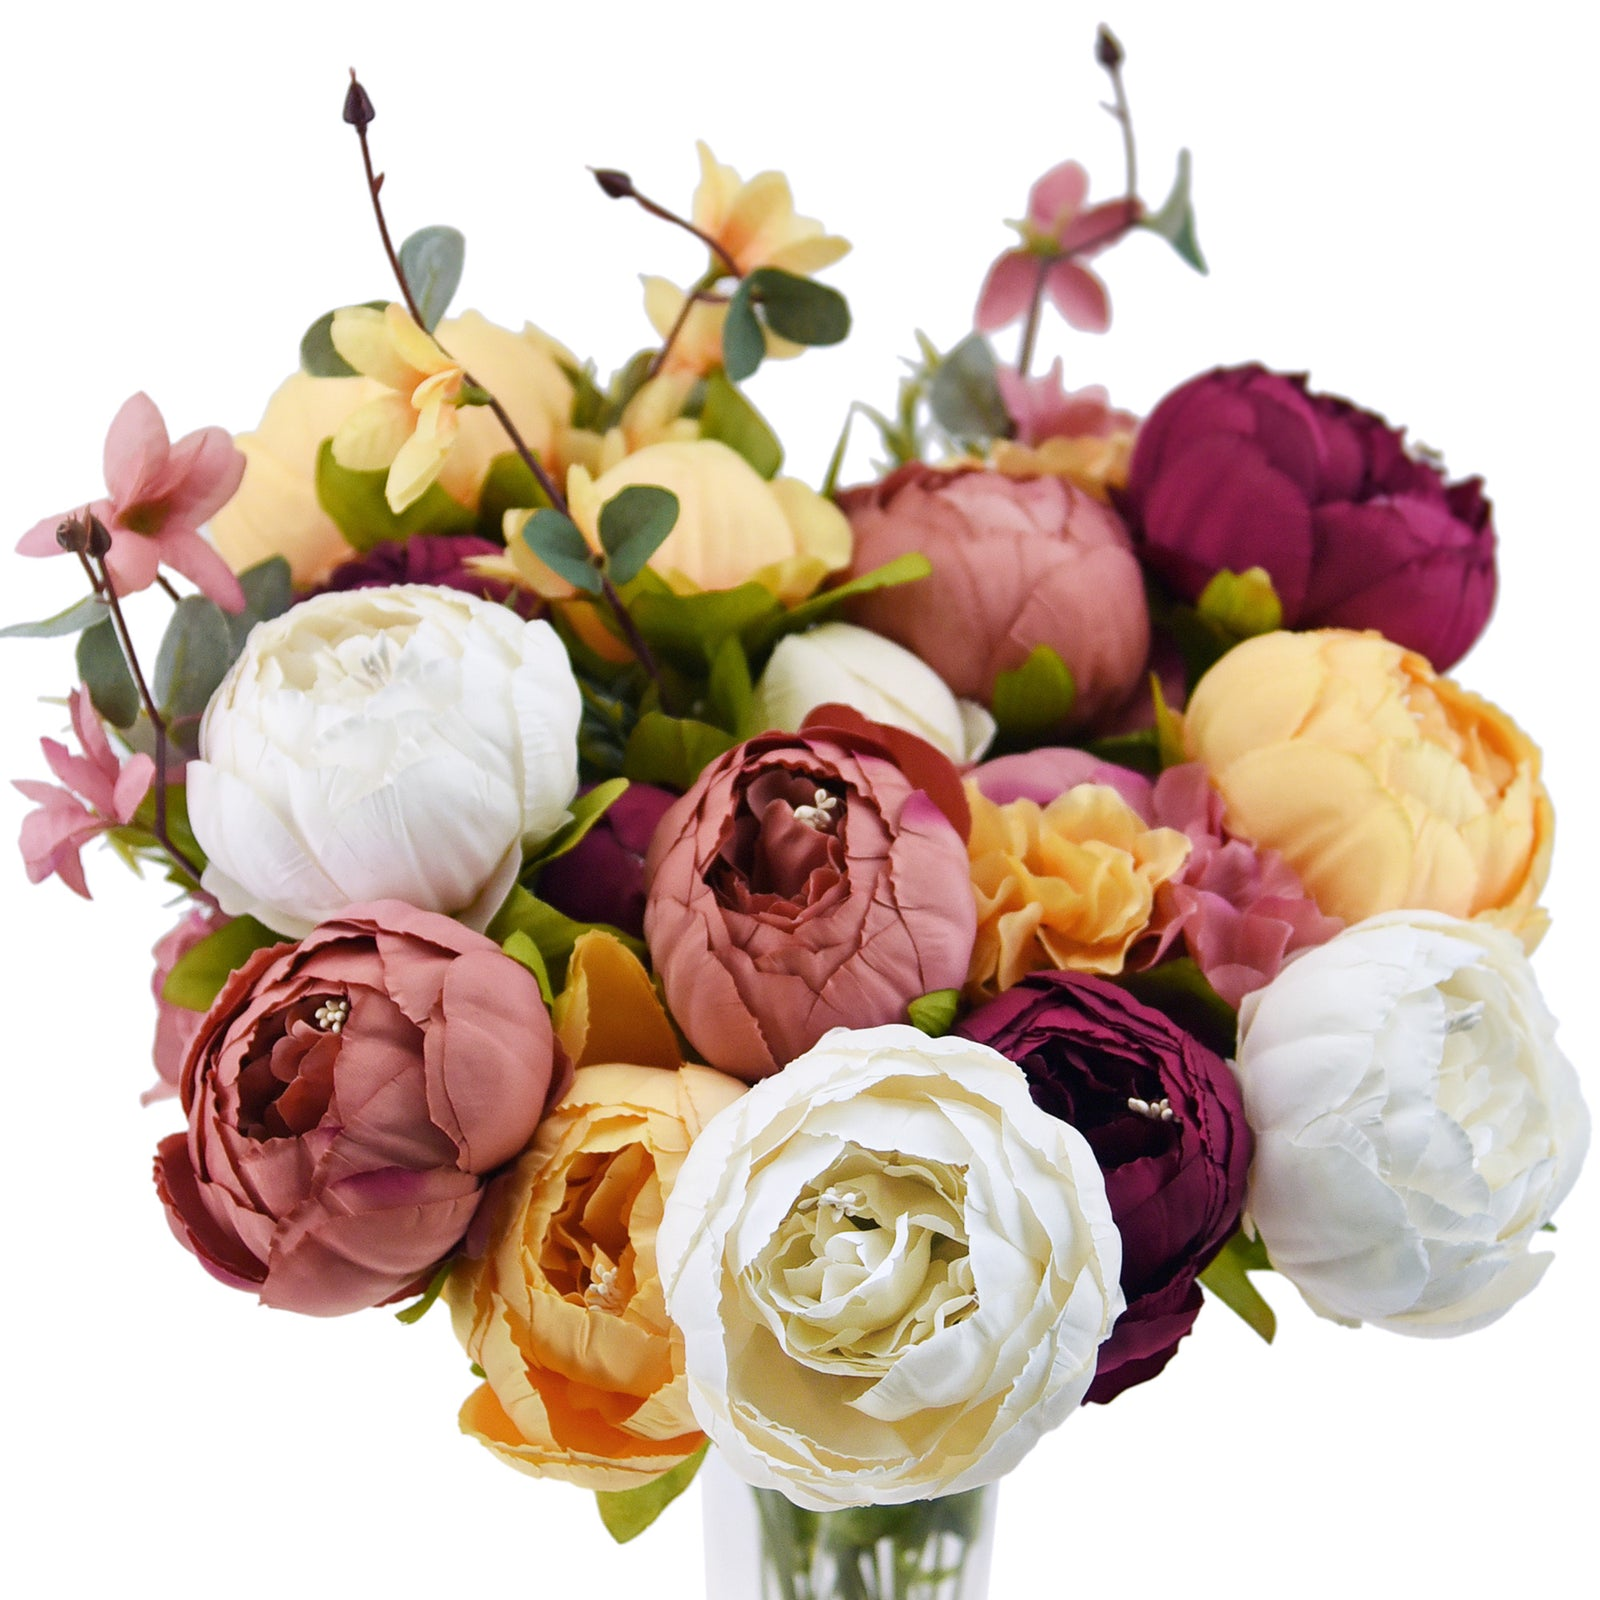 FiveSeasonStuff 2 Stems (Country Delightful) Silk Peonies Artificial Flower Bouquet